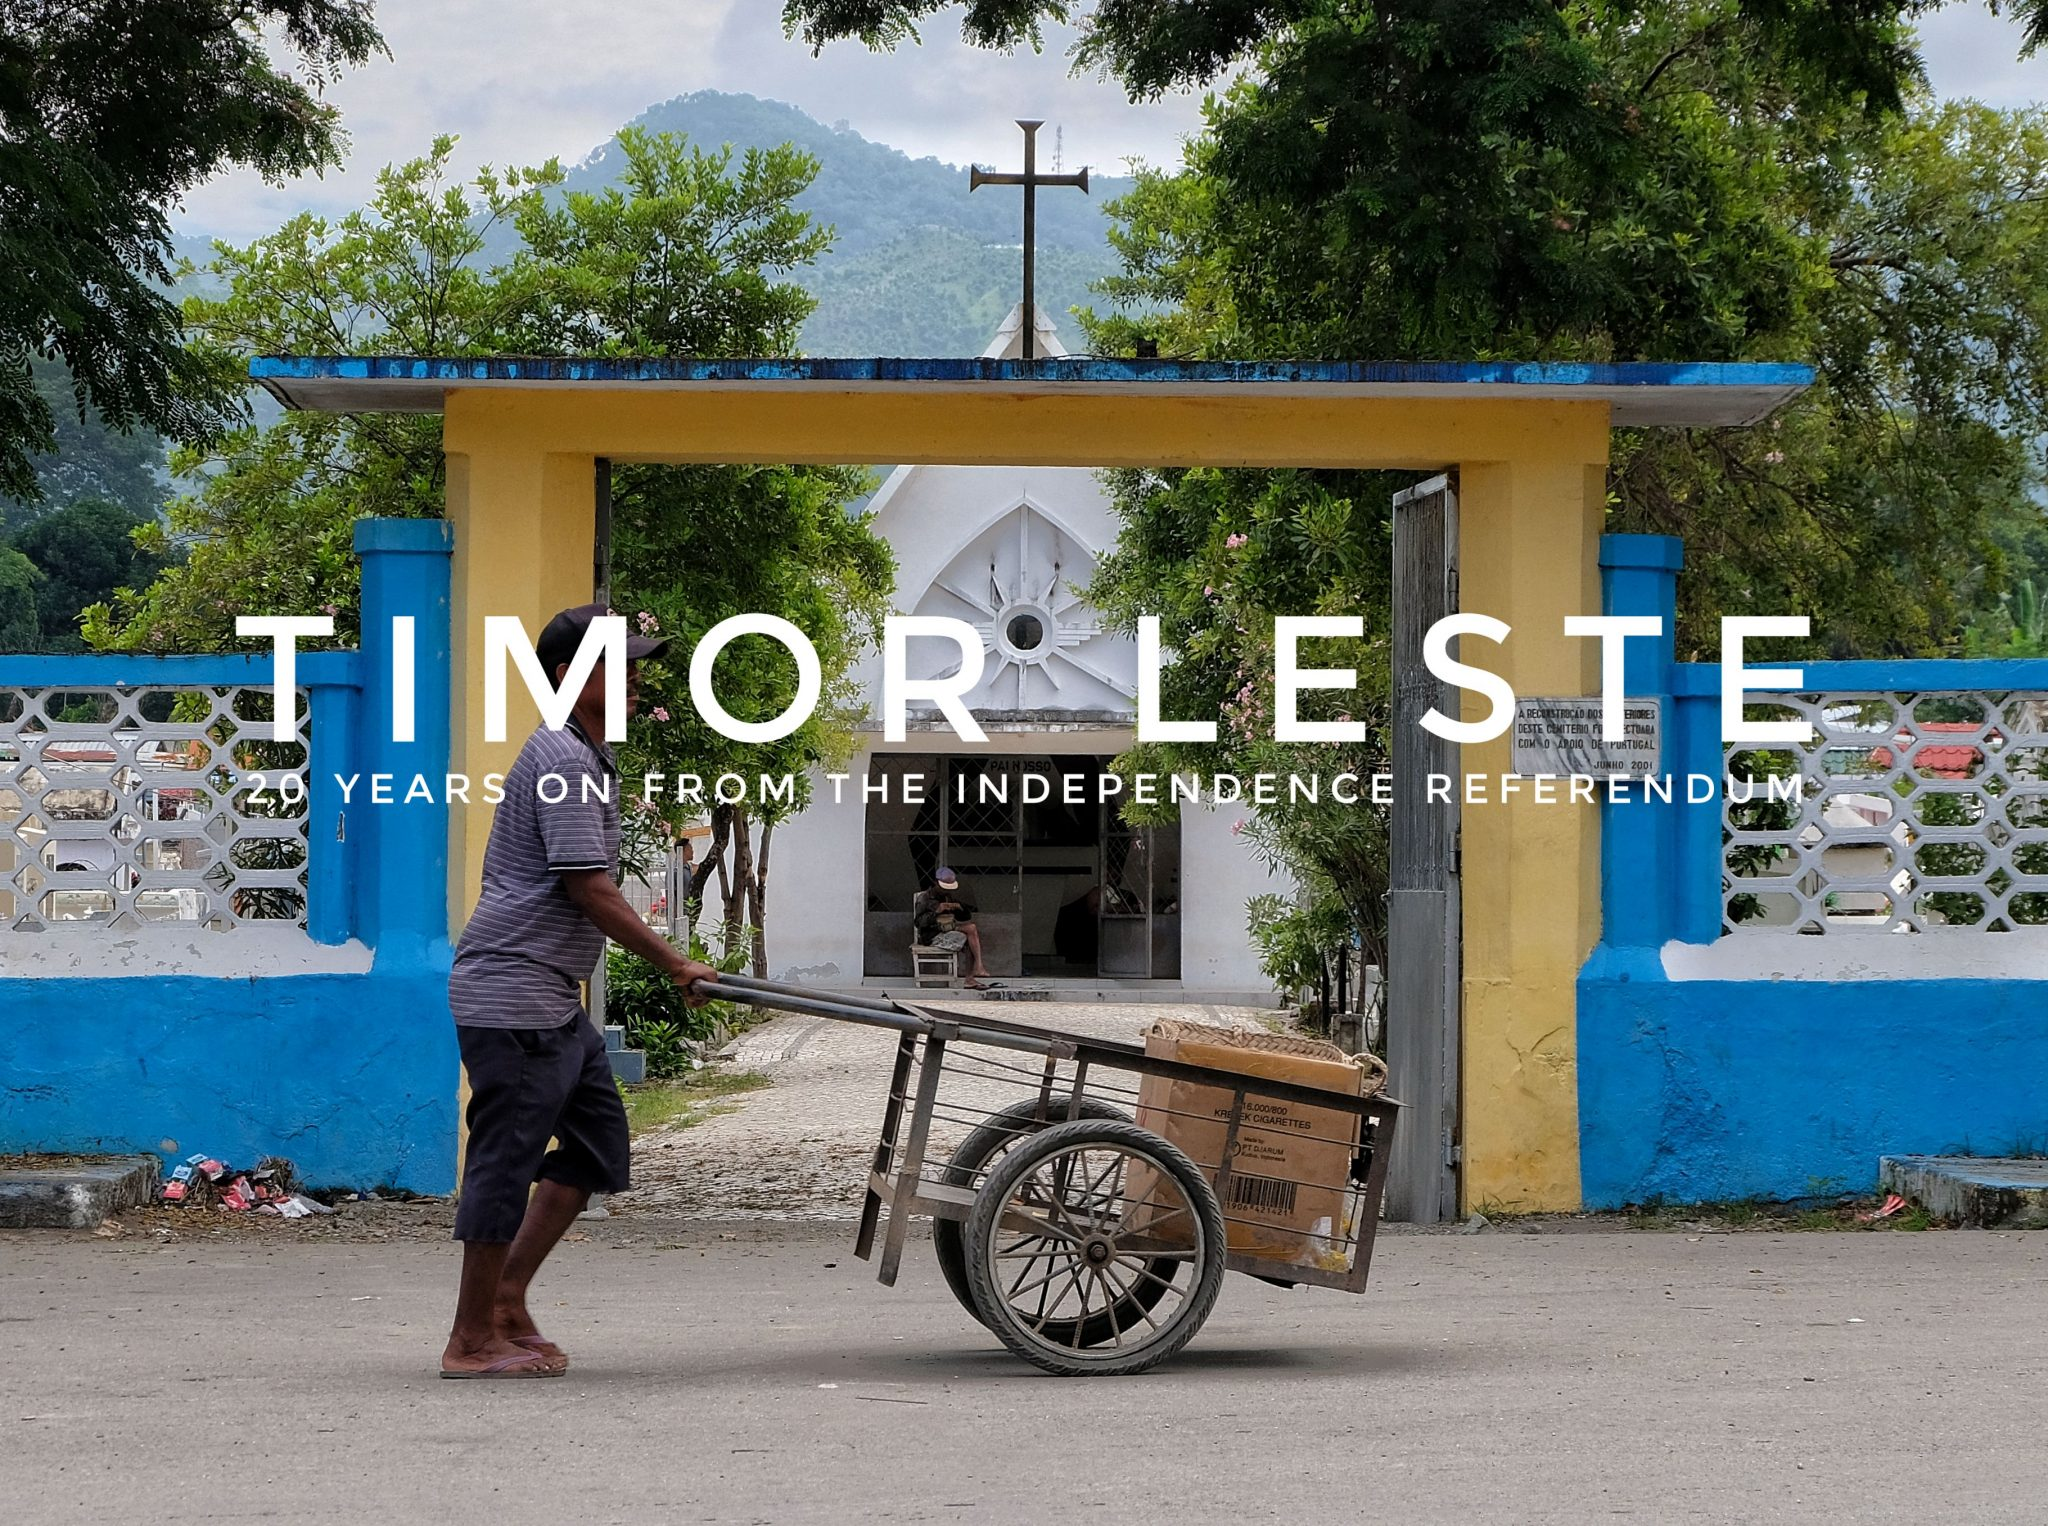 Timor Leste | 20 Years On From The Independence Referendum